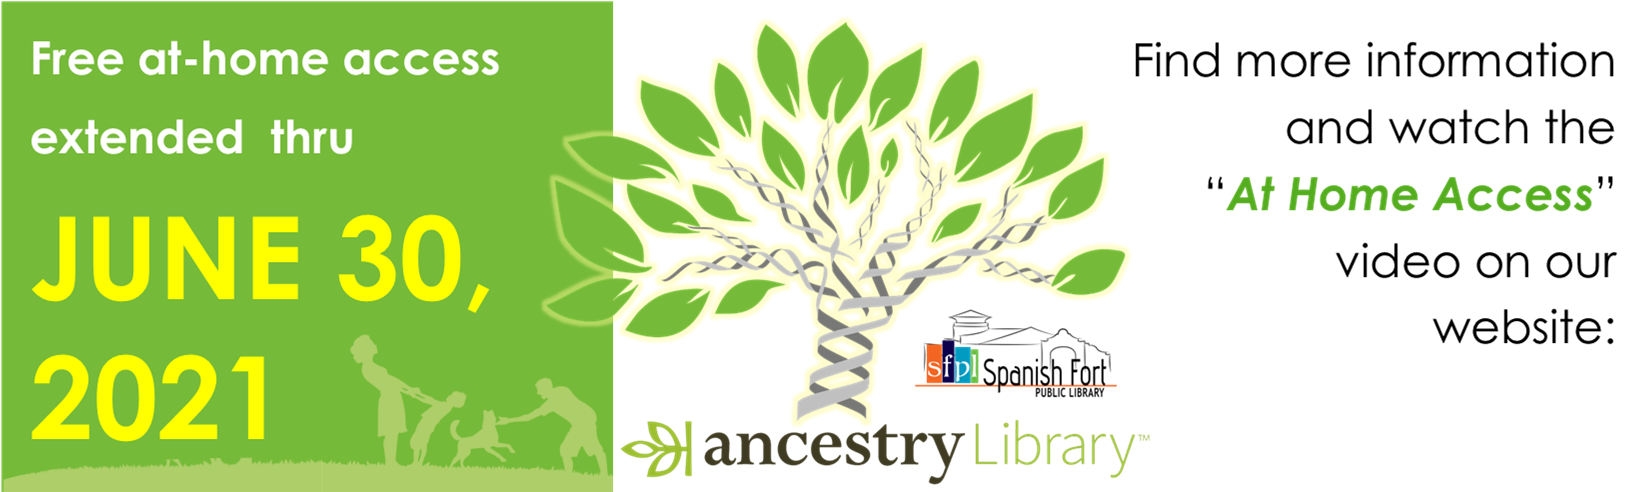 "Alabama Public Library Service has extended free, at home access to Ancestry Library Edition through June 31, 2021! Click the ""How To Access"" video button, or find instructions for access on the ADULT RESOURCES page; look under the ADULTS tab in the menu bar."